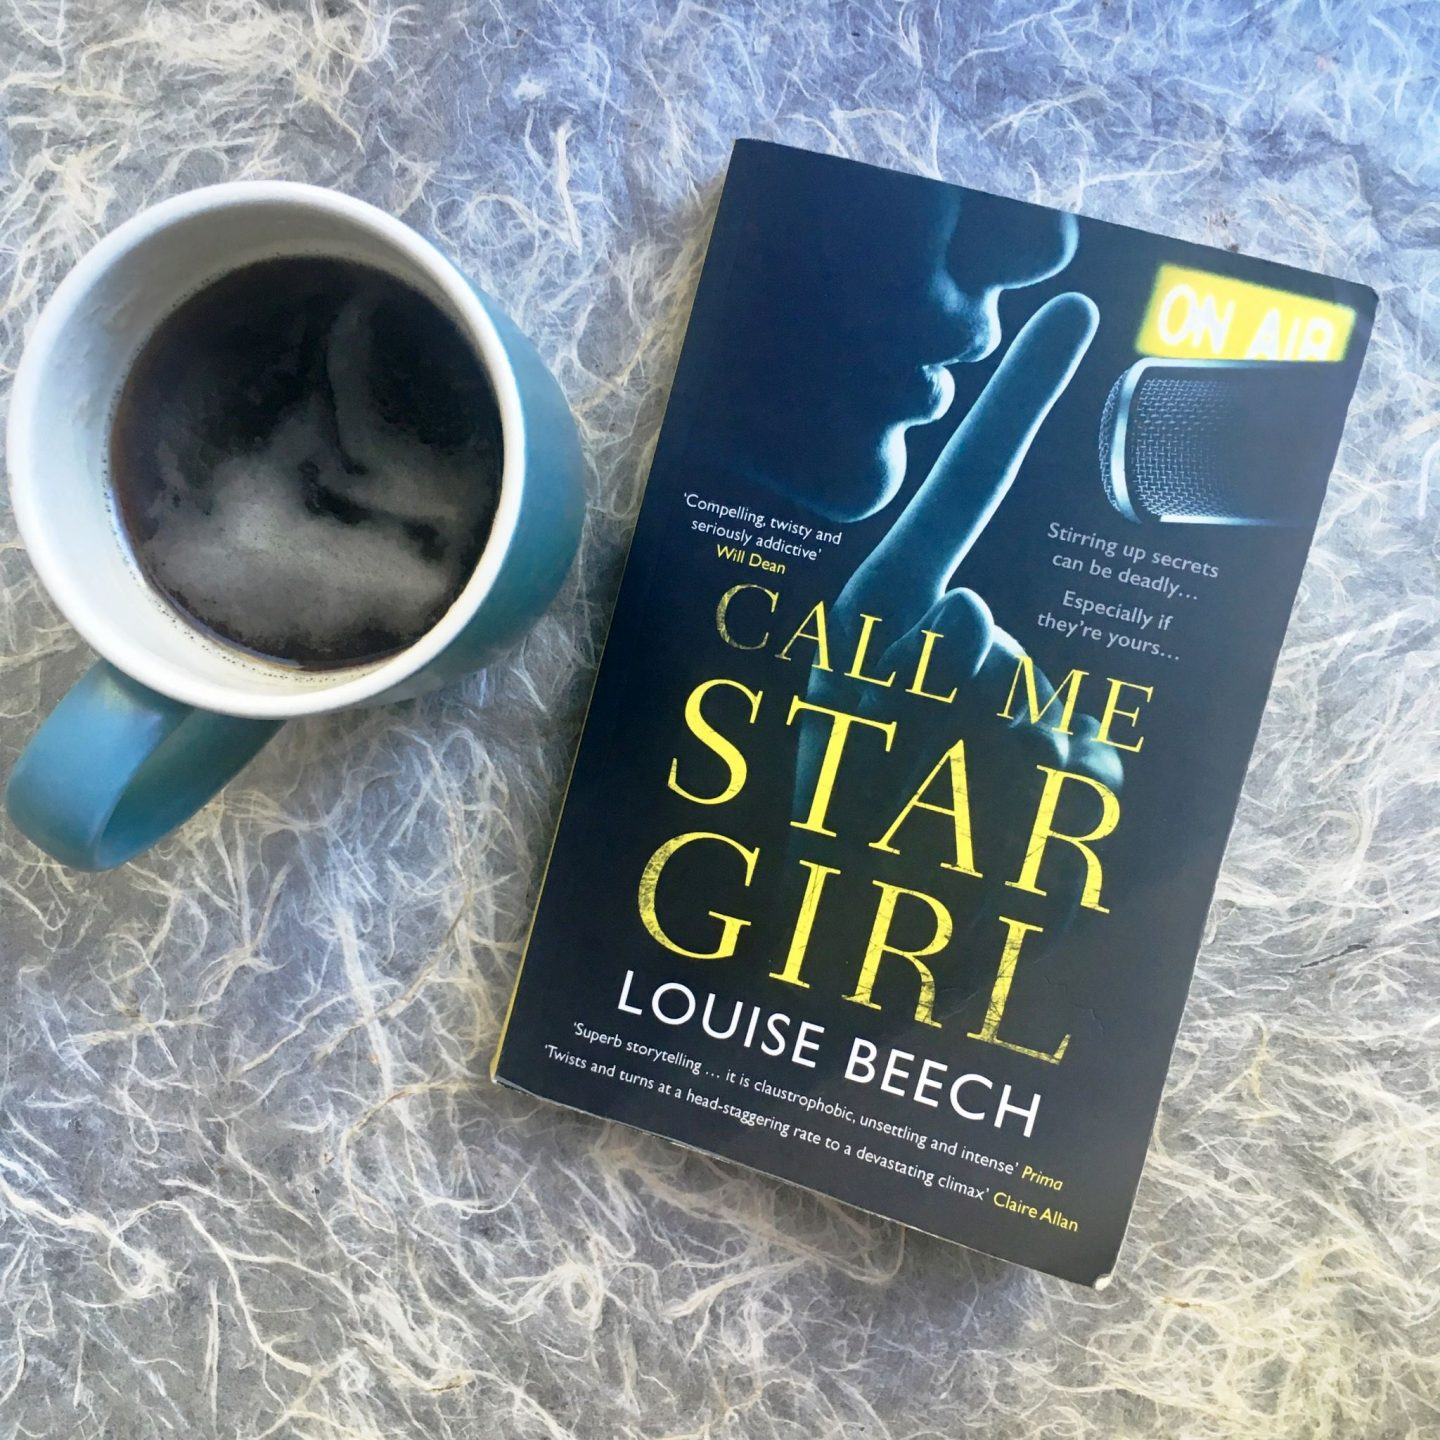 Call Me Star Girl; a truly emotive psychological thriller